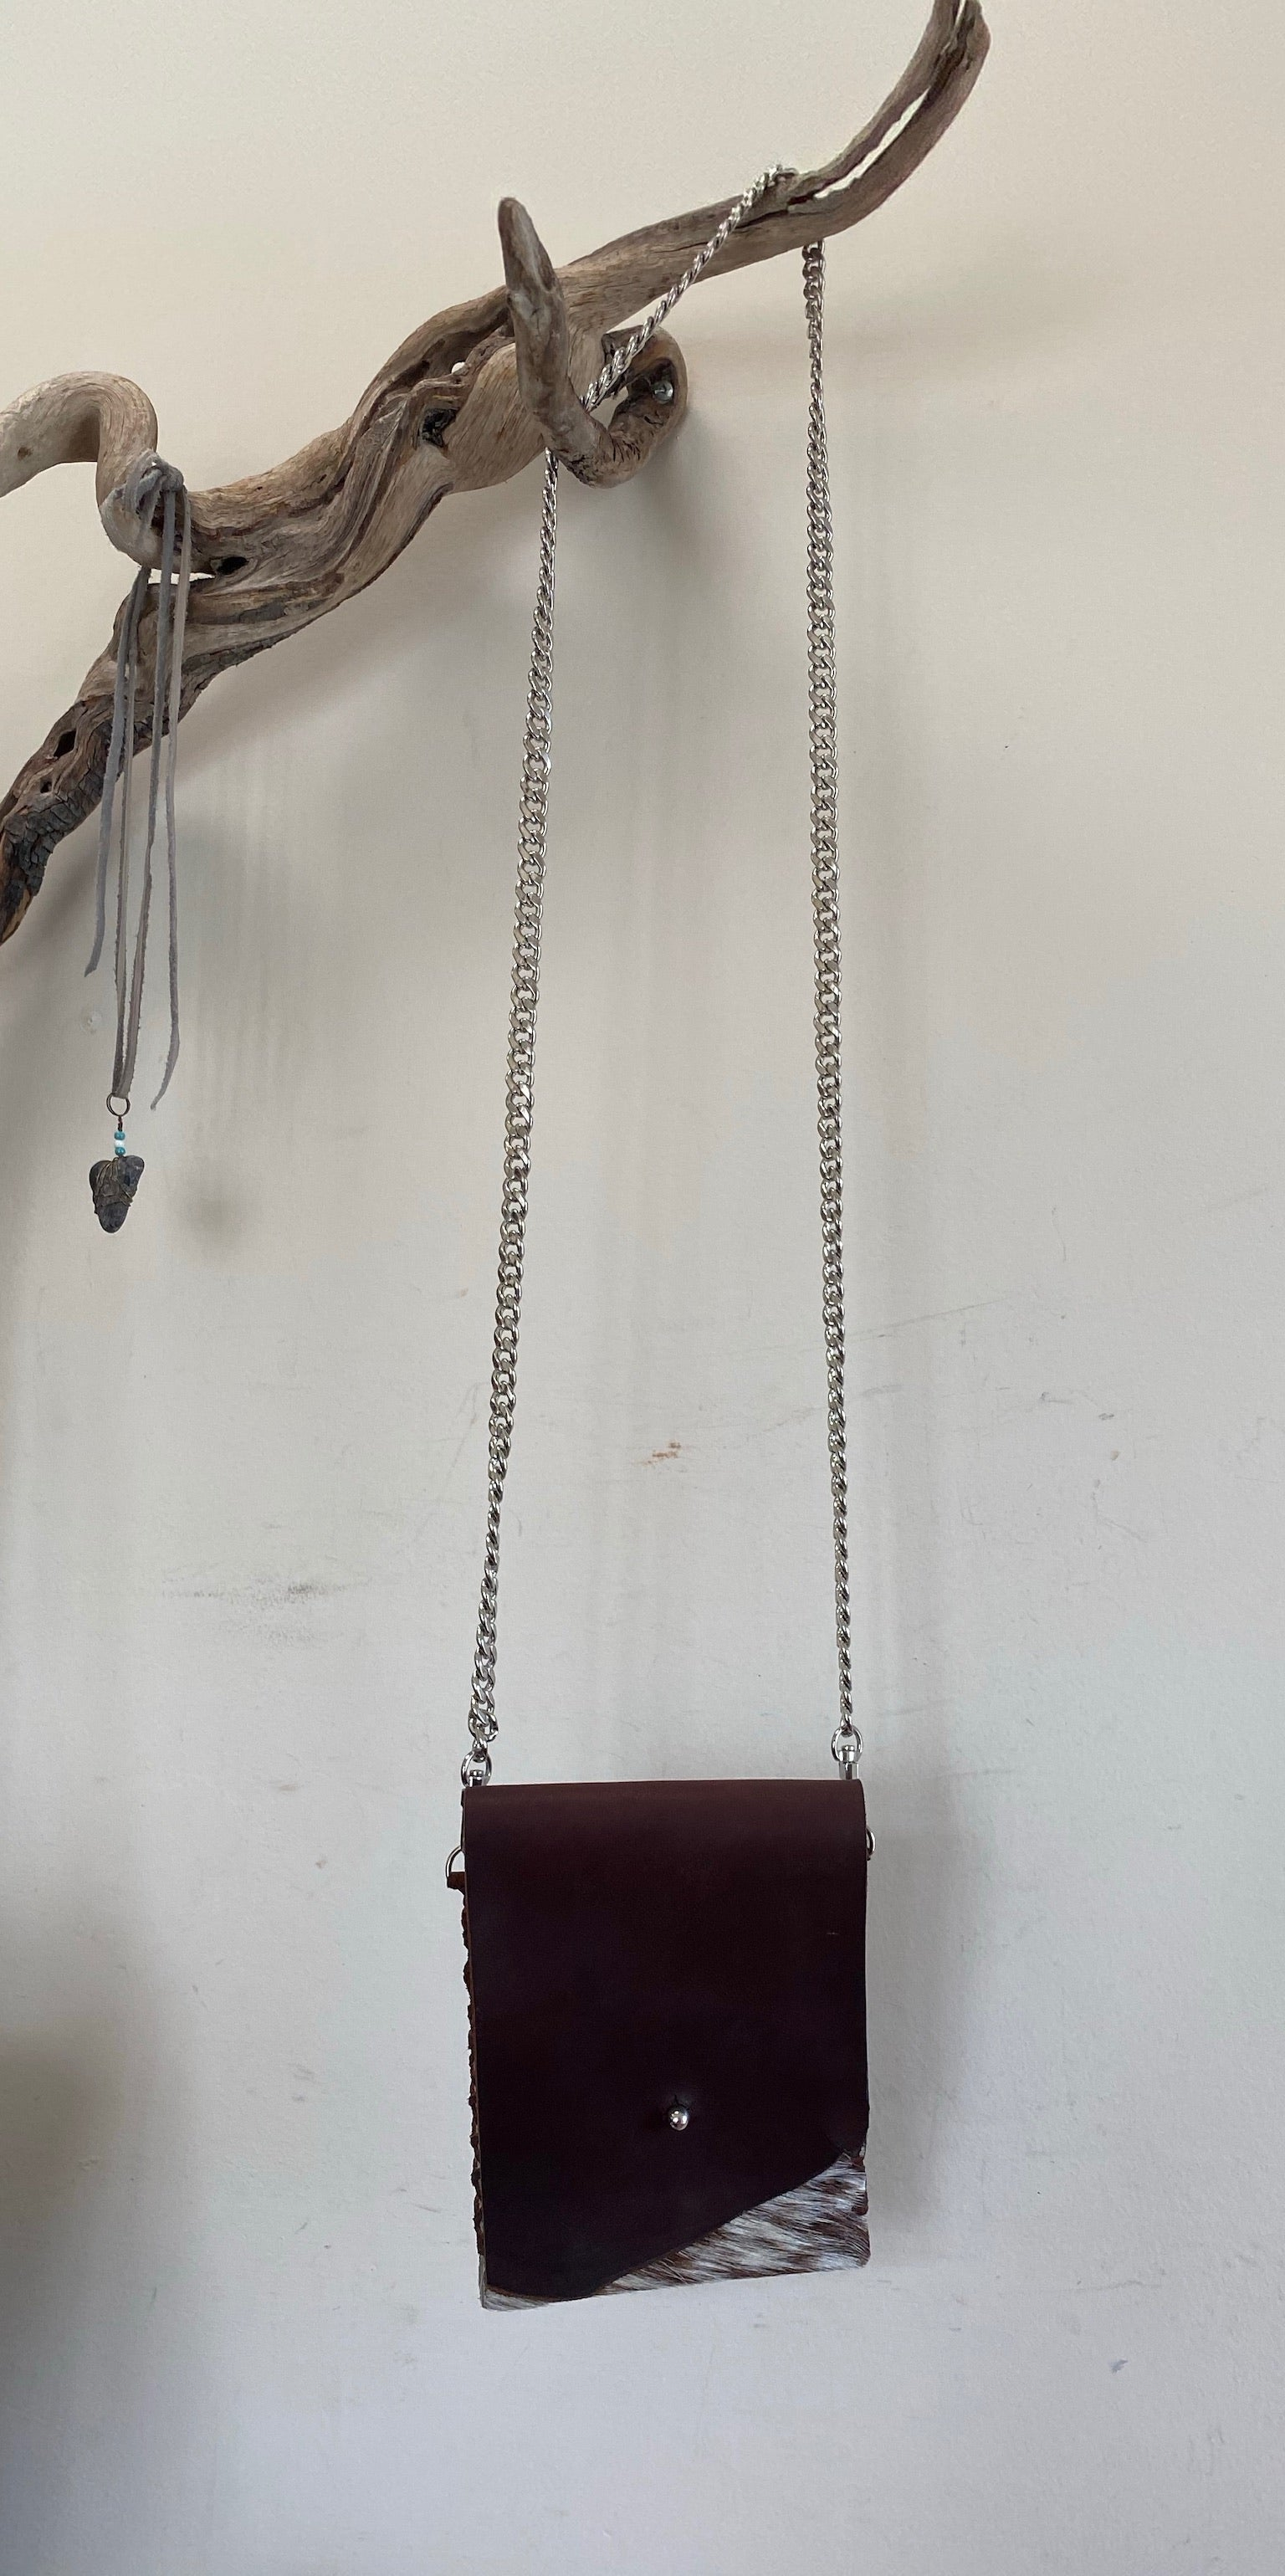 #272 Brown Hair-On Leather Crossbody Bag w/ Chain Strap